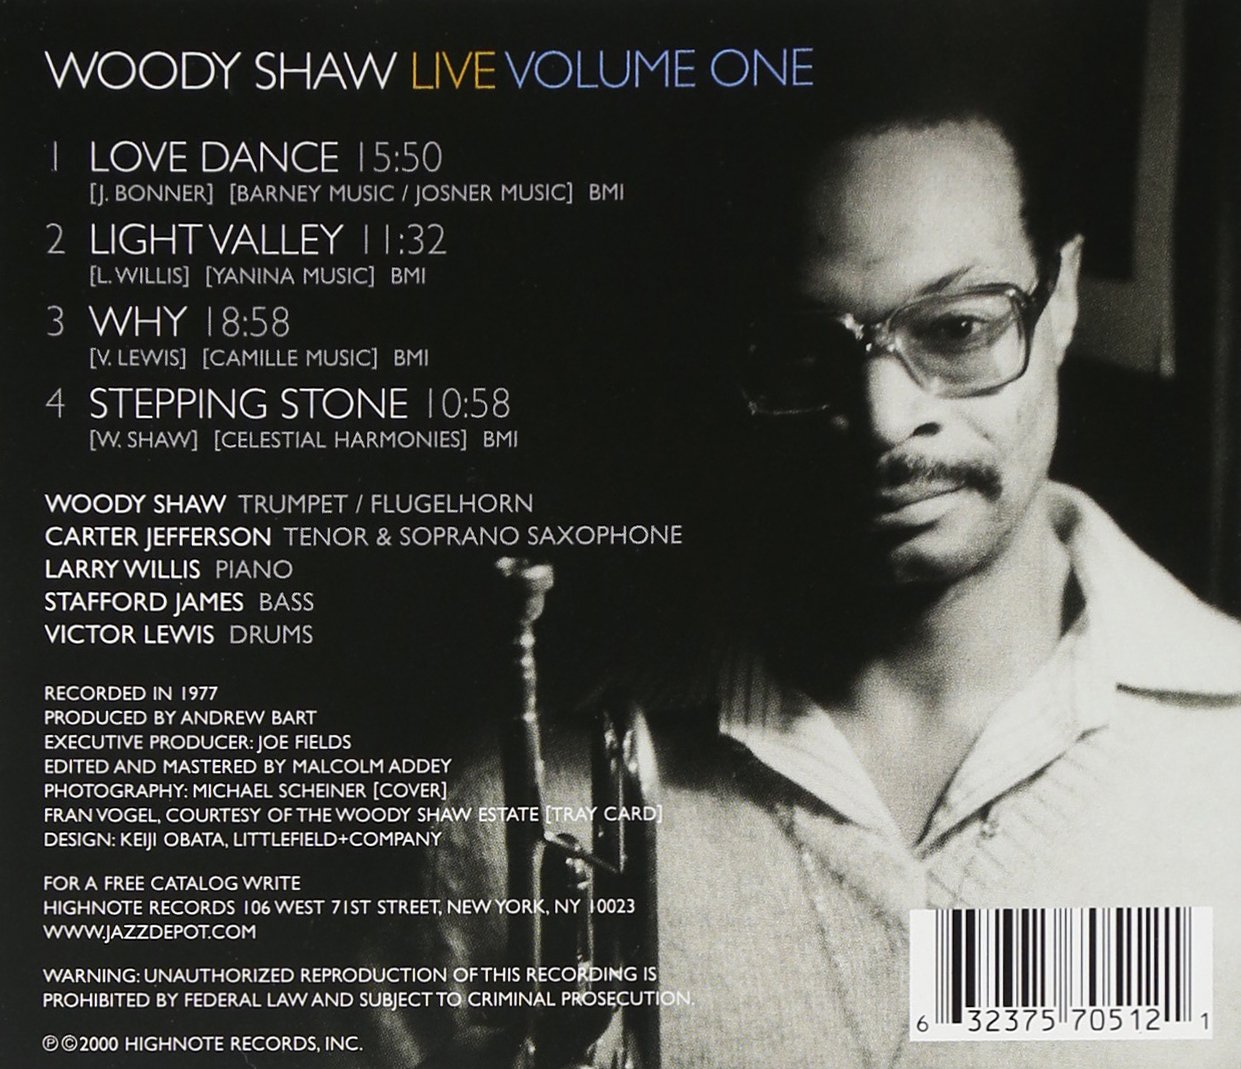 Woody Shaw Live, Volume One by HIGHNOTE